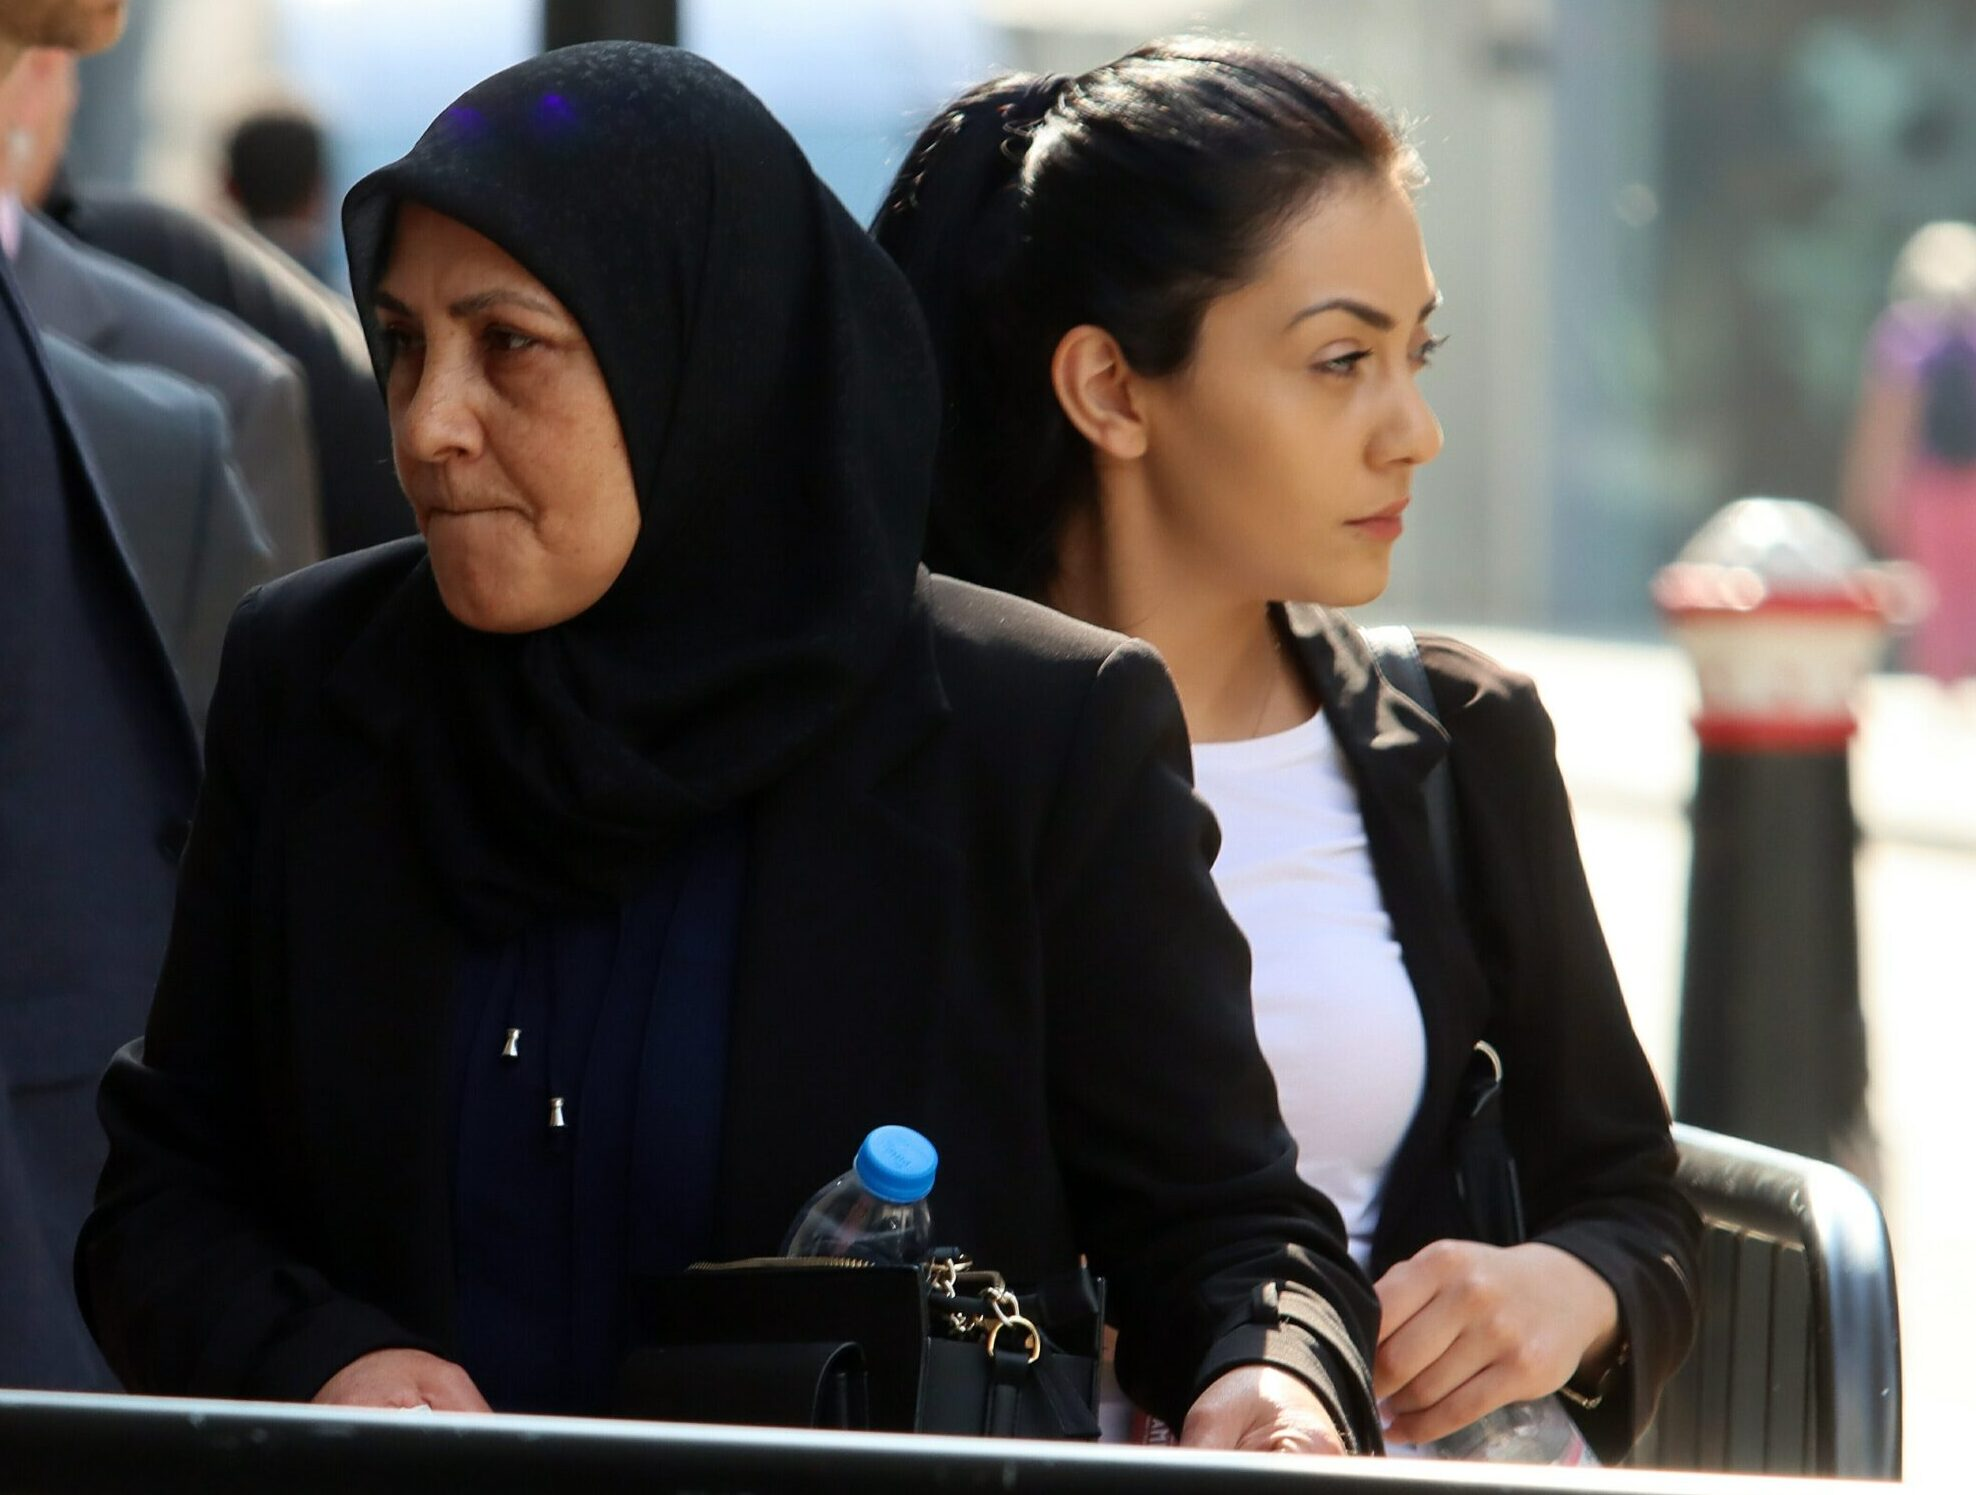 Mother and sister in 'cover up' after man mowed down cop